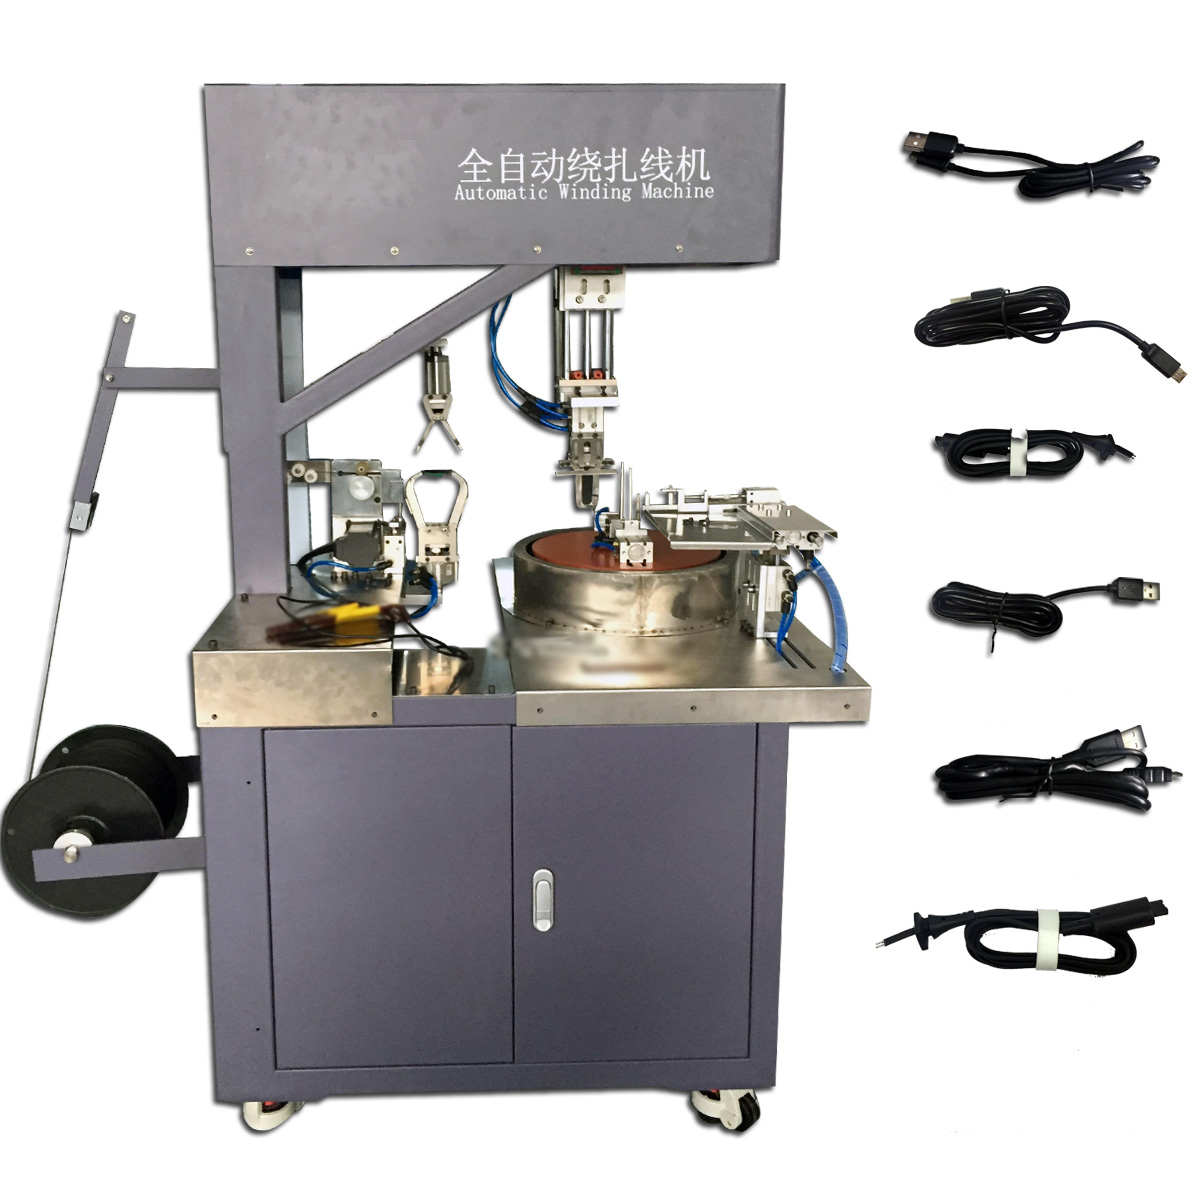 winding and binding machine full automatic packing machine for cable